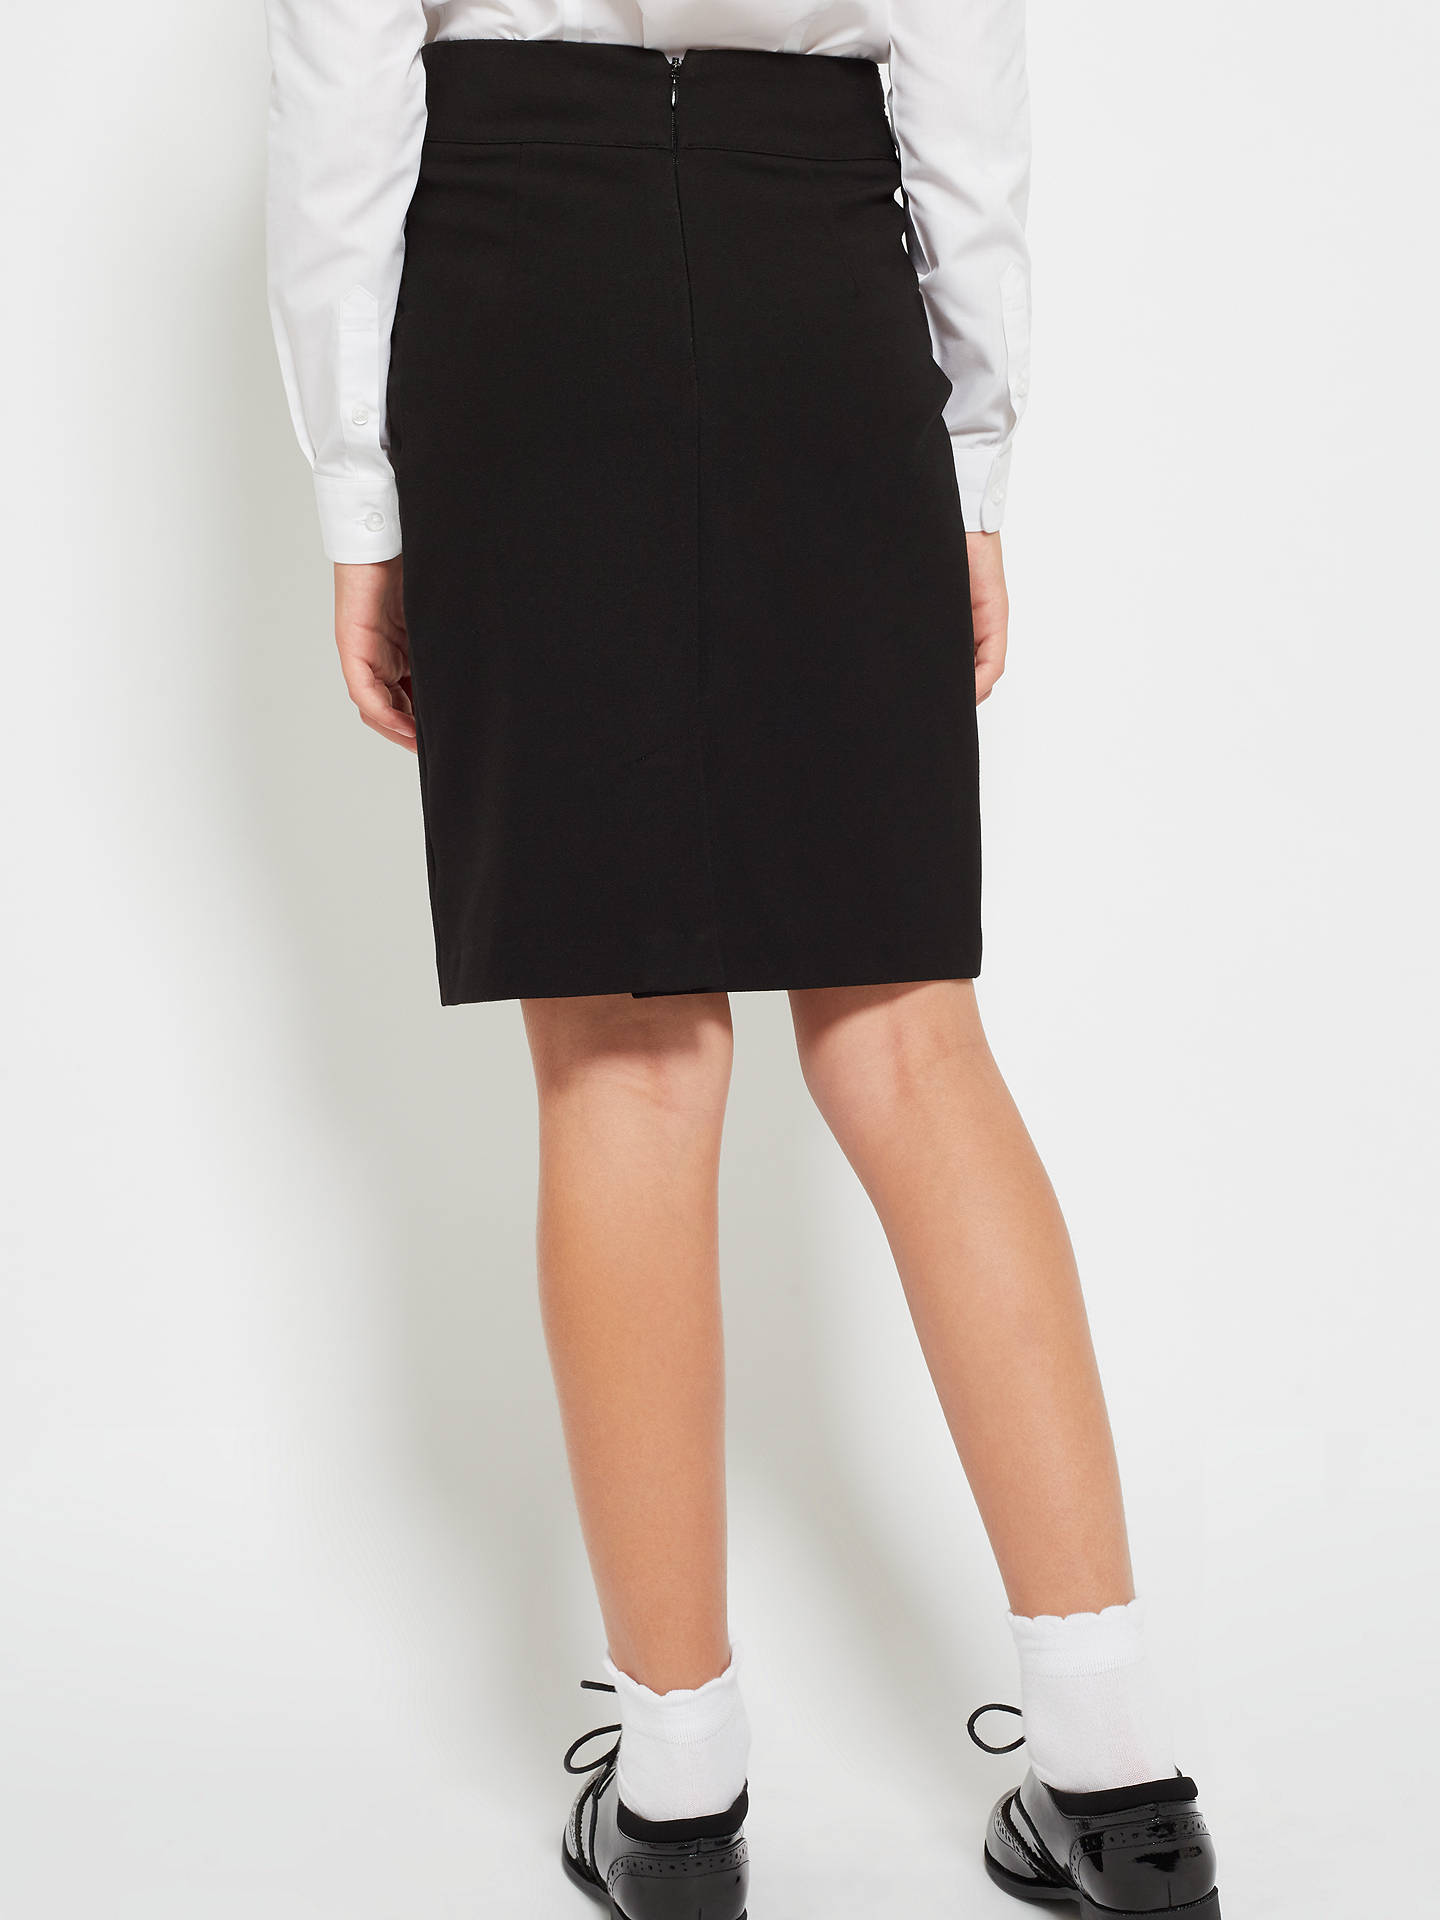 Buy John Lewis & Partners Senior Girls' School Pencil Skirt, Black, 12 years Online at johnlewis.com